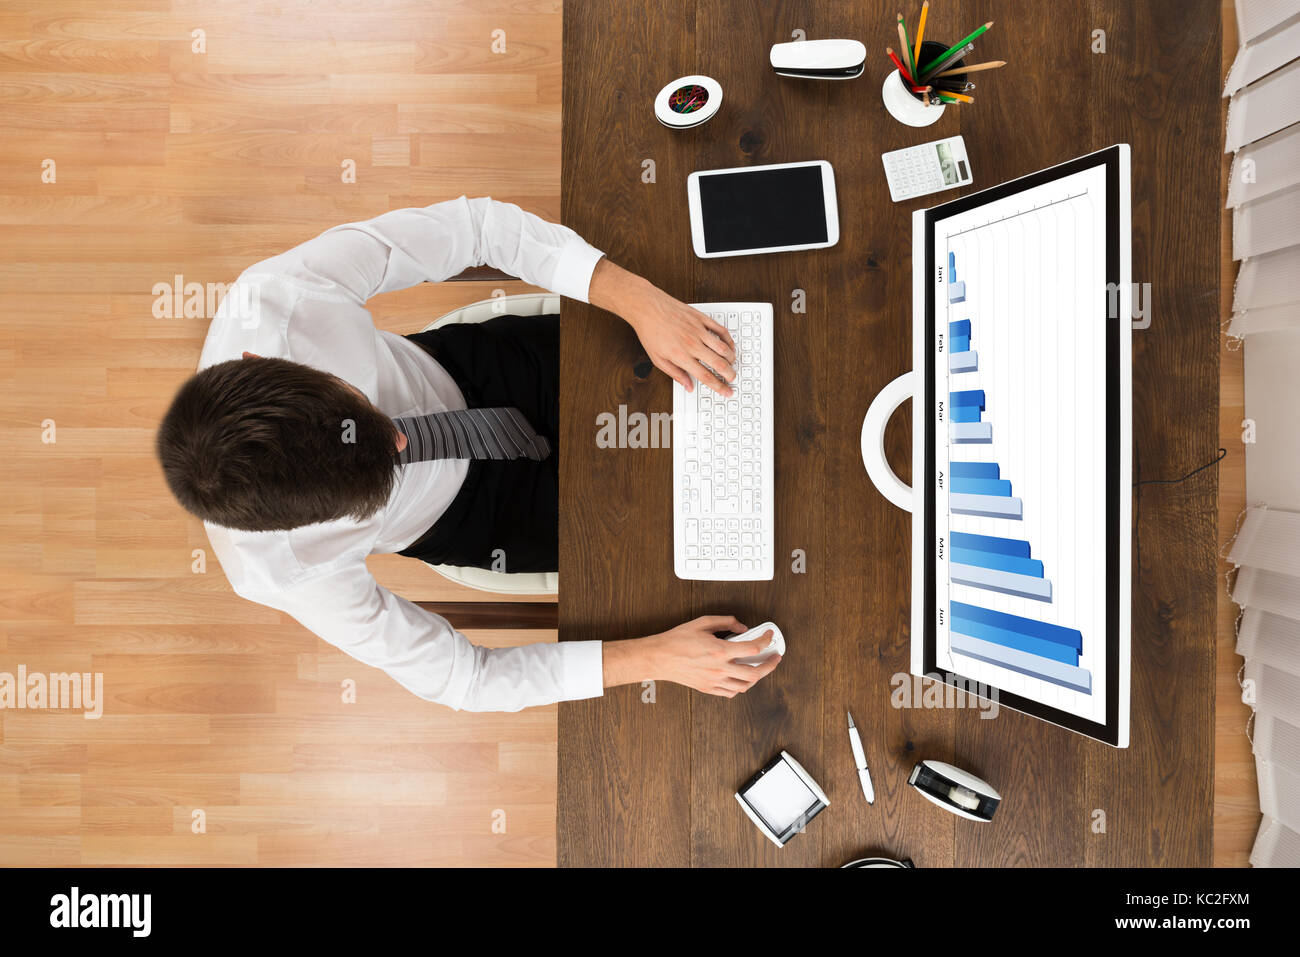 High Angle View Of Businessperson Analyzing Statistical Graph On Computer At Wooden Desk - Stock Image